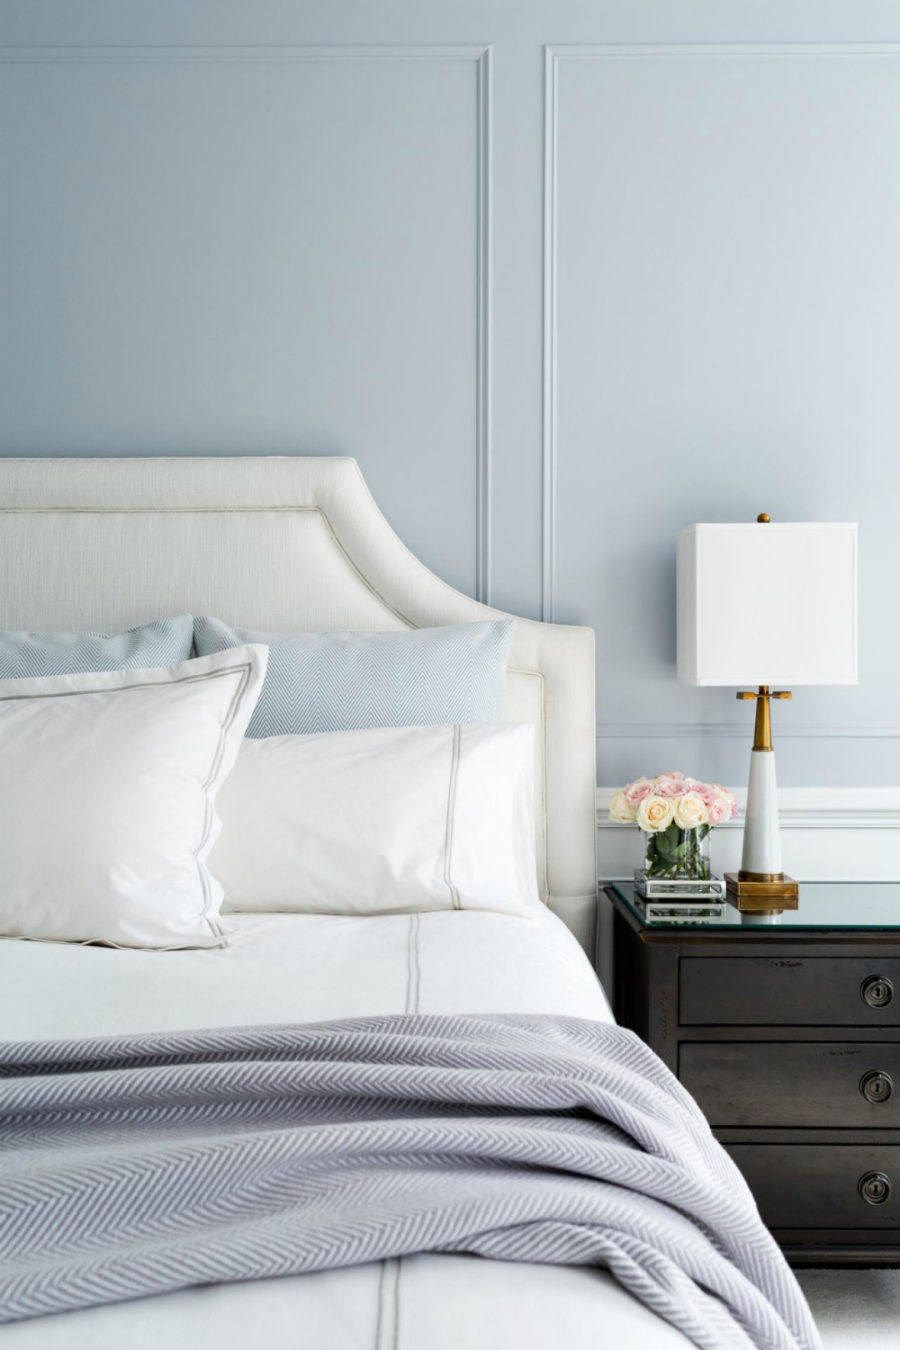 Why Pastel Colors Should Be Part Of Your Bedroom Design 2 pastel colors Why Pastel Colors Should Be Part Of Your Bedroom Design Why Pastel Colors Should Be Part Of Your Bedroom Design 2